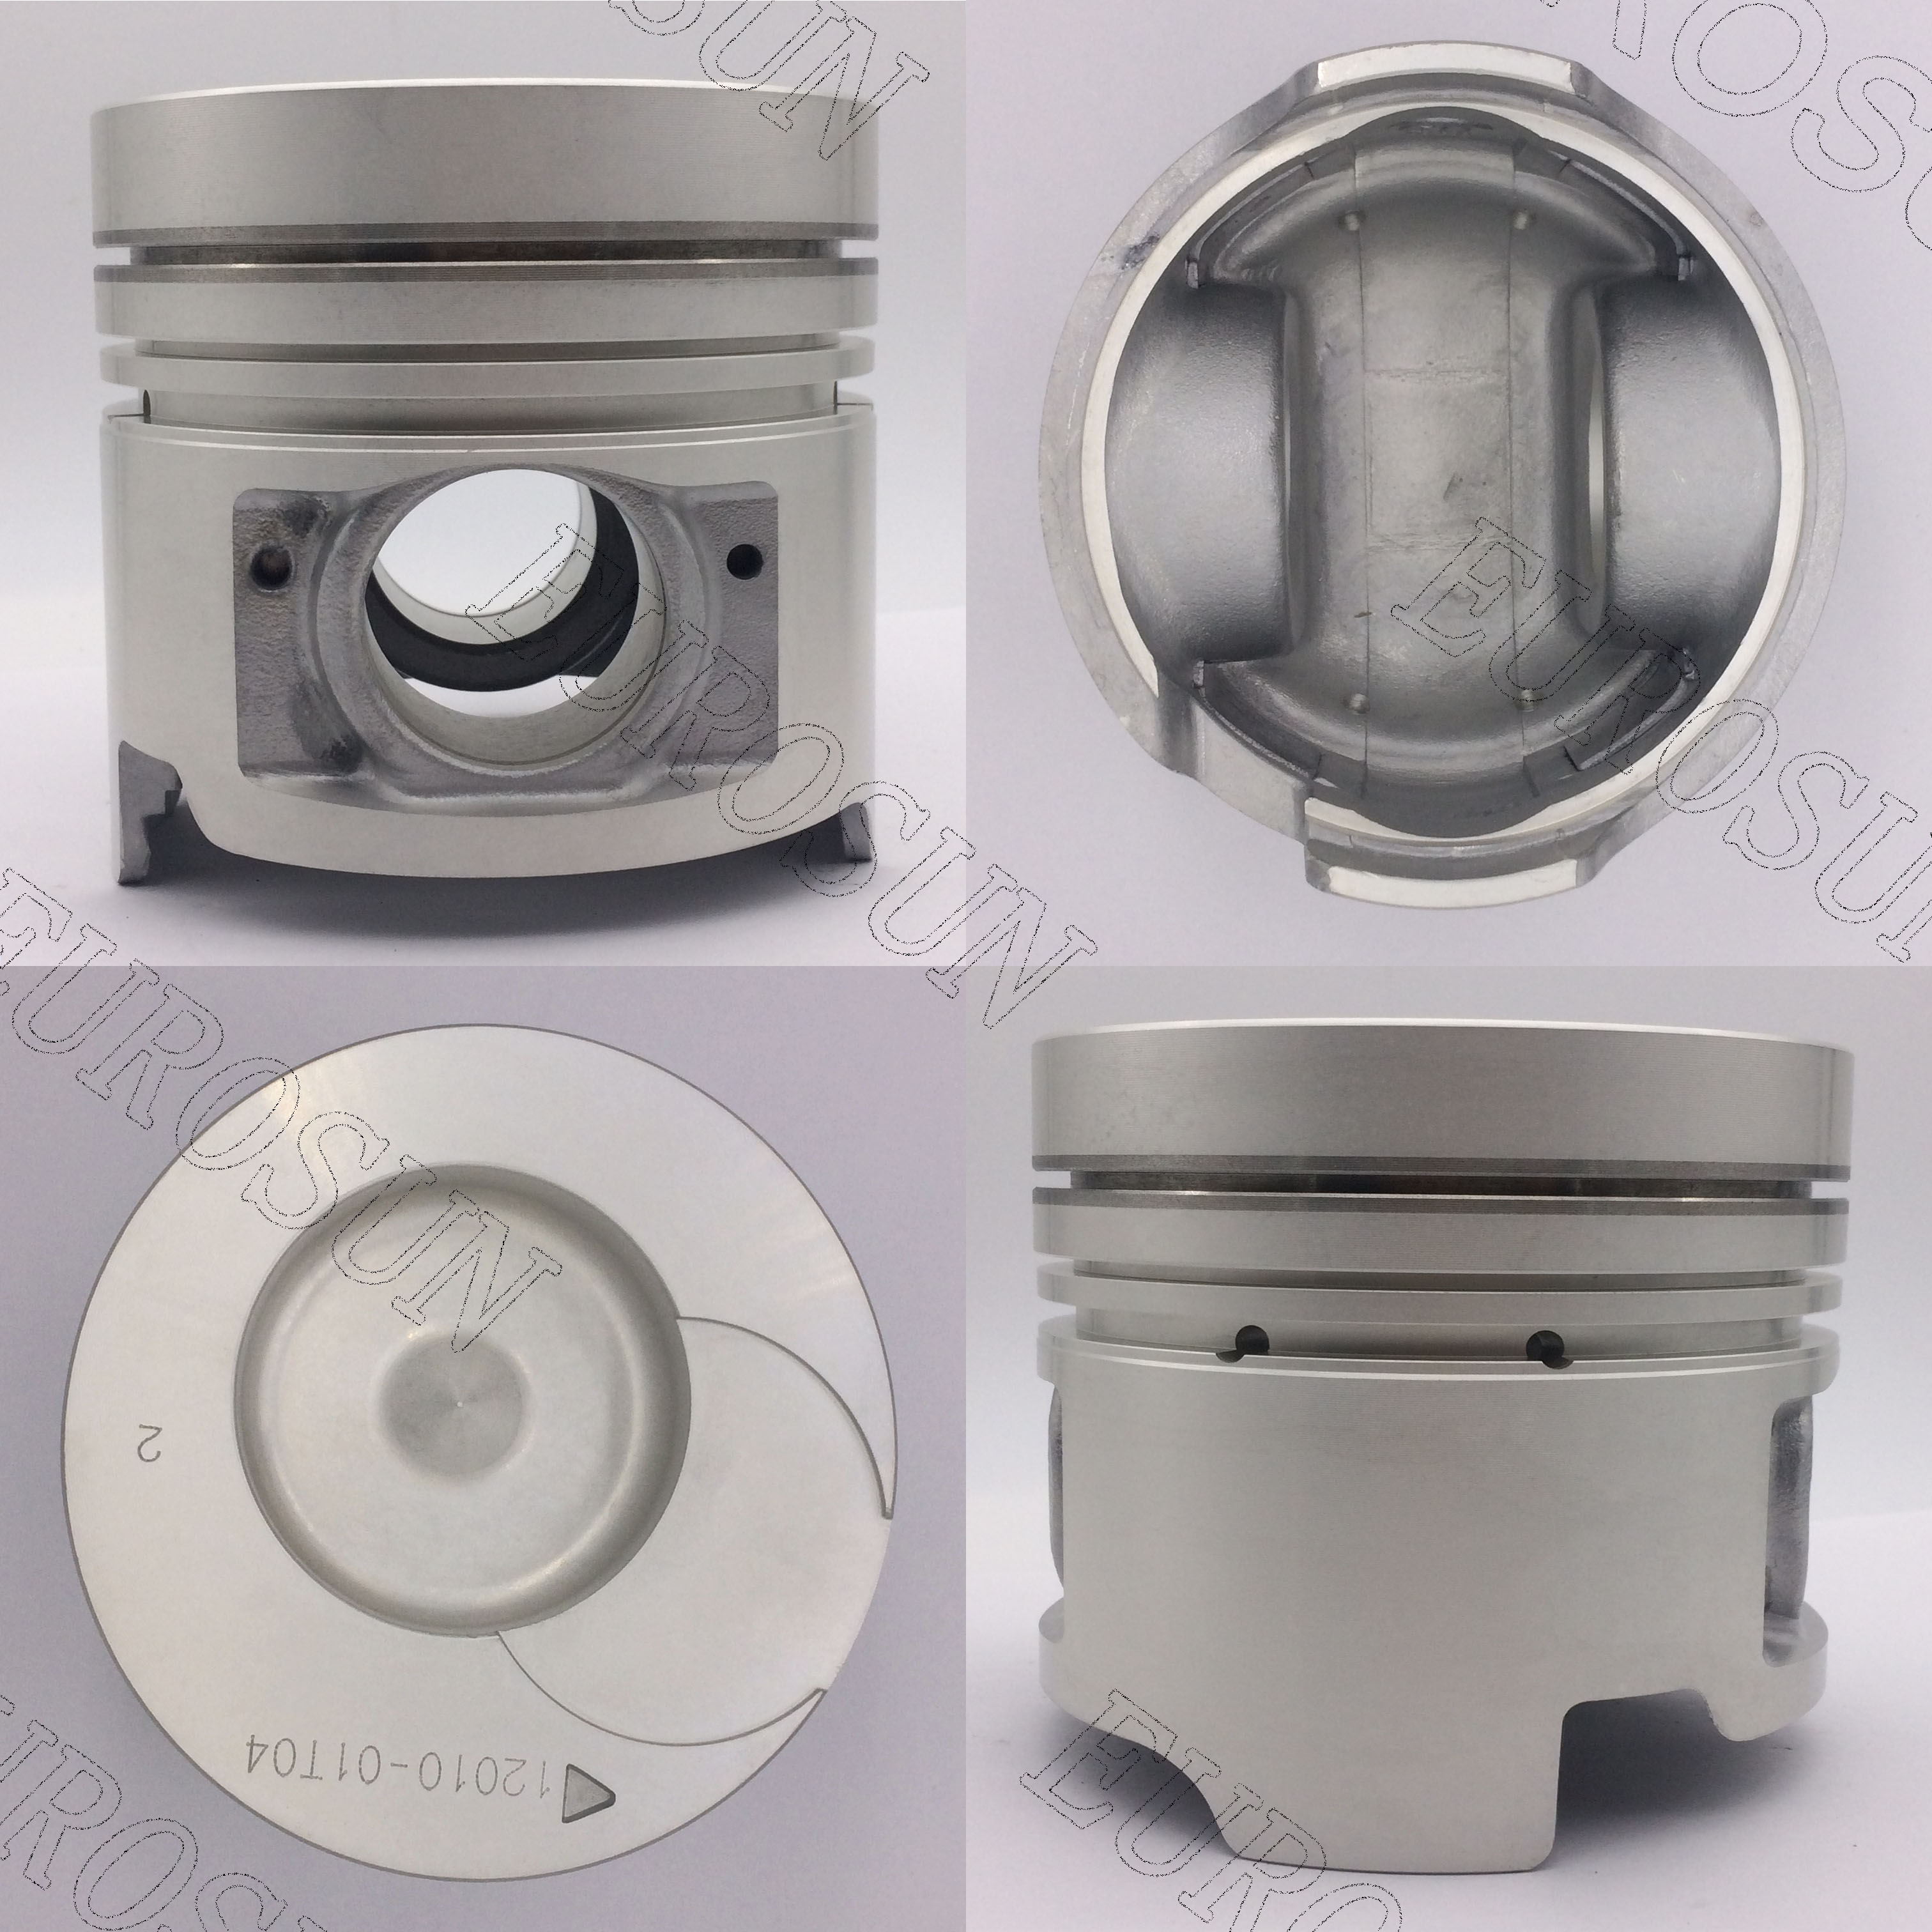 Nissan FD35(12010-01T04) piston with pin and clips